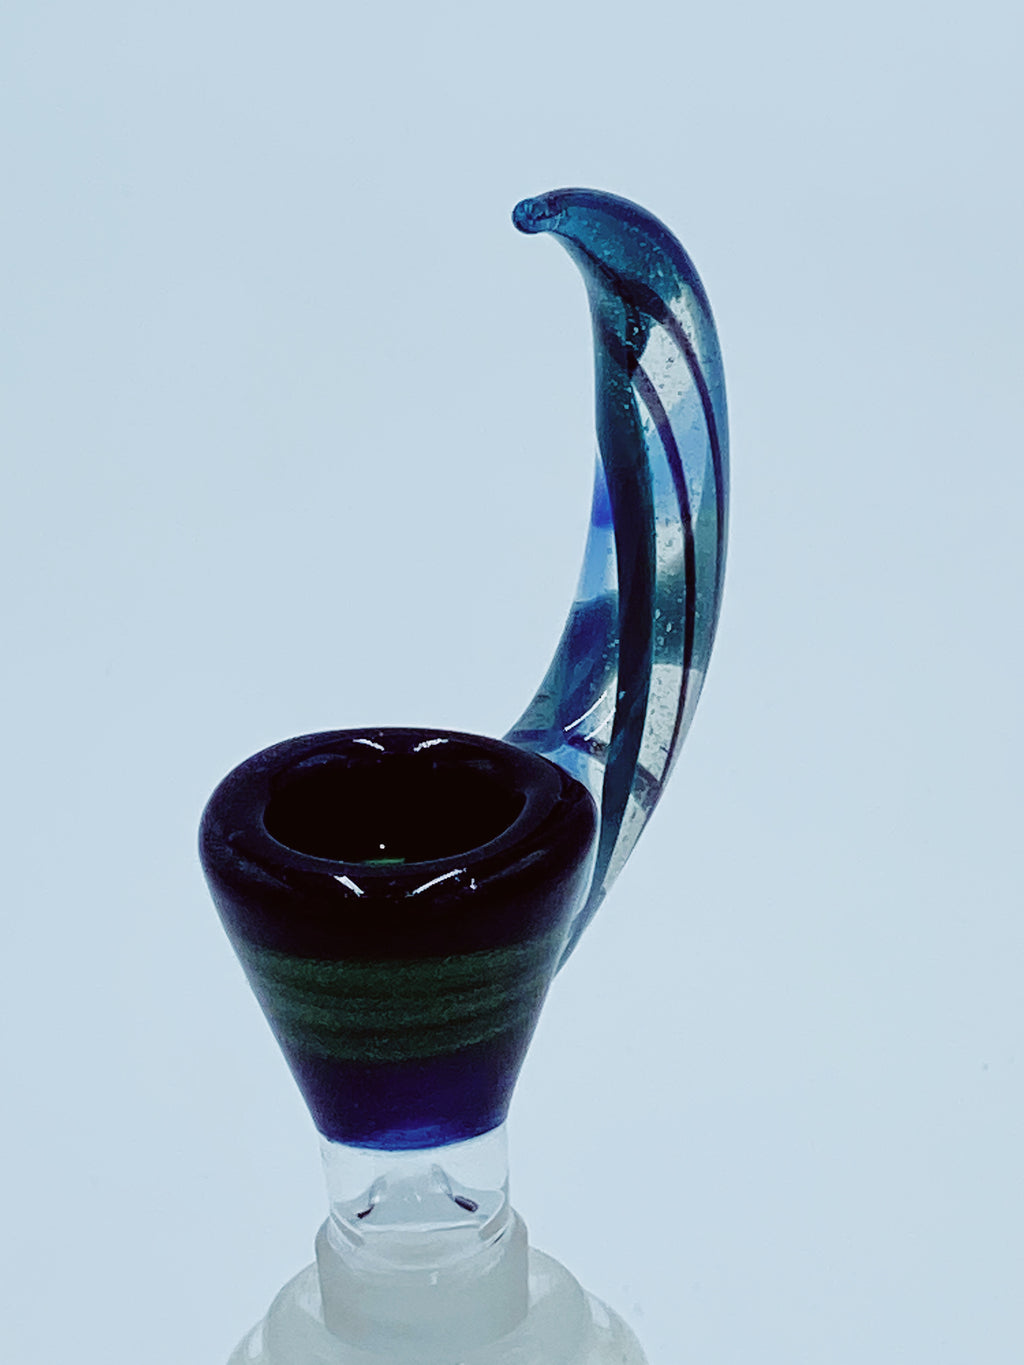 TEAR E 14MM DEEP BLUE UV BOWL - Smoke Country - Land of the artistic glass blown bongs